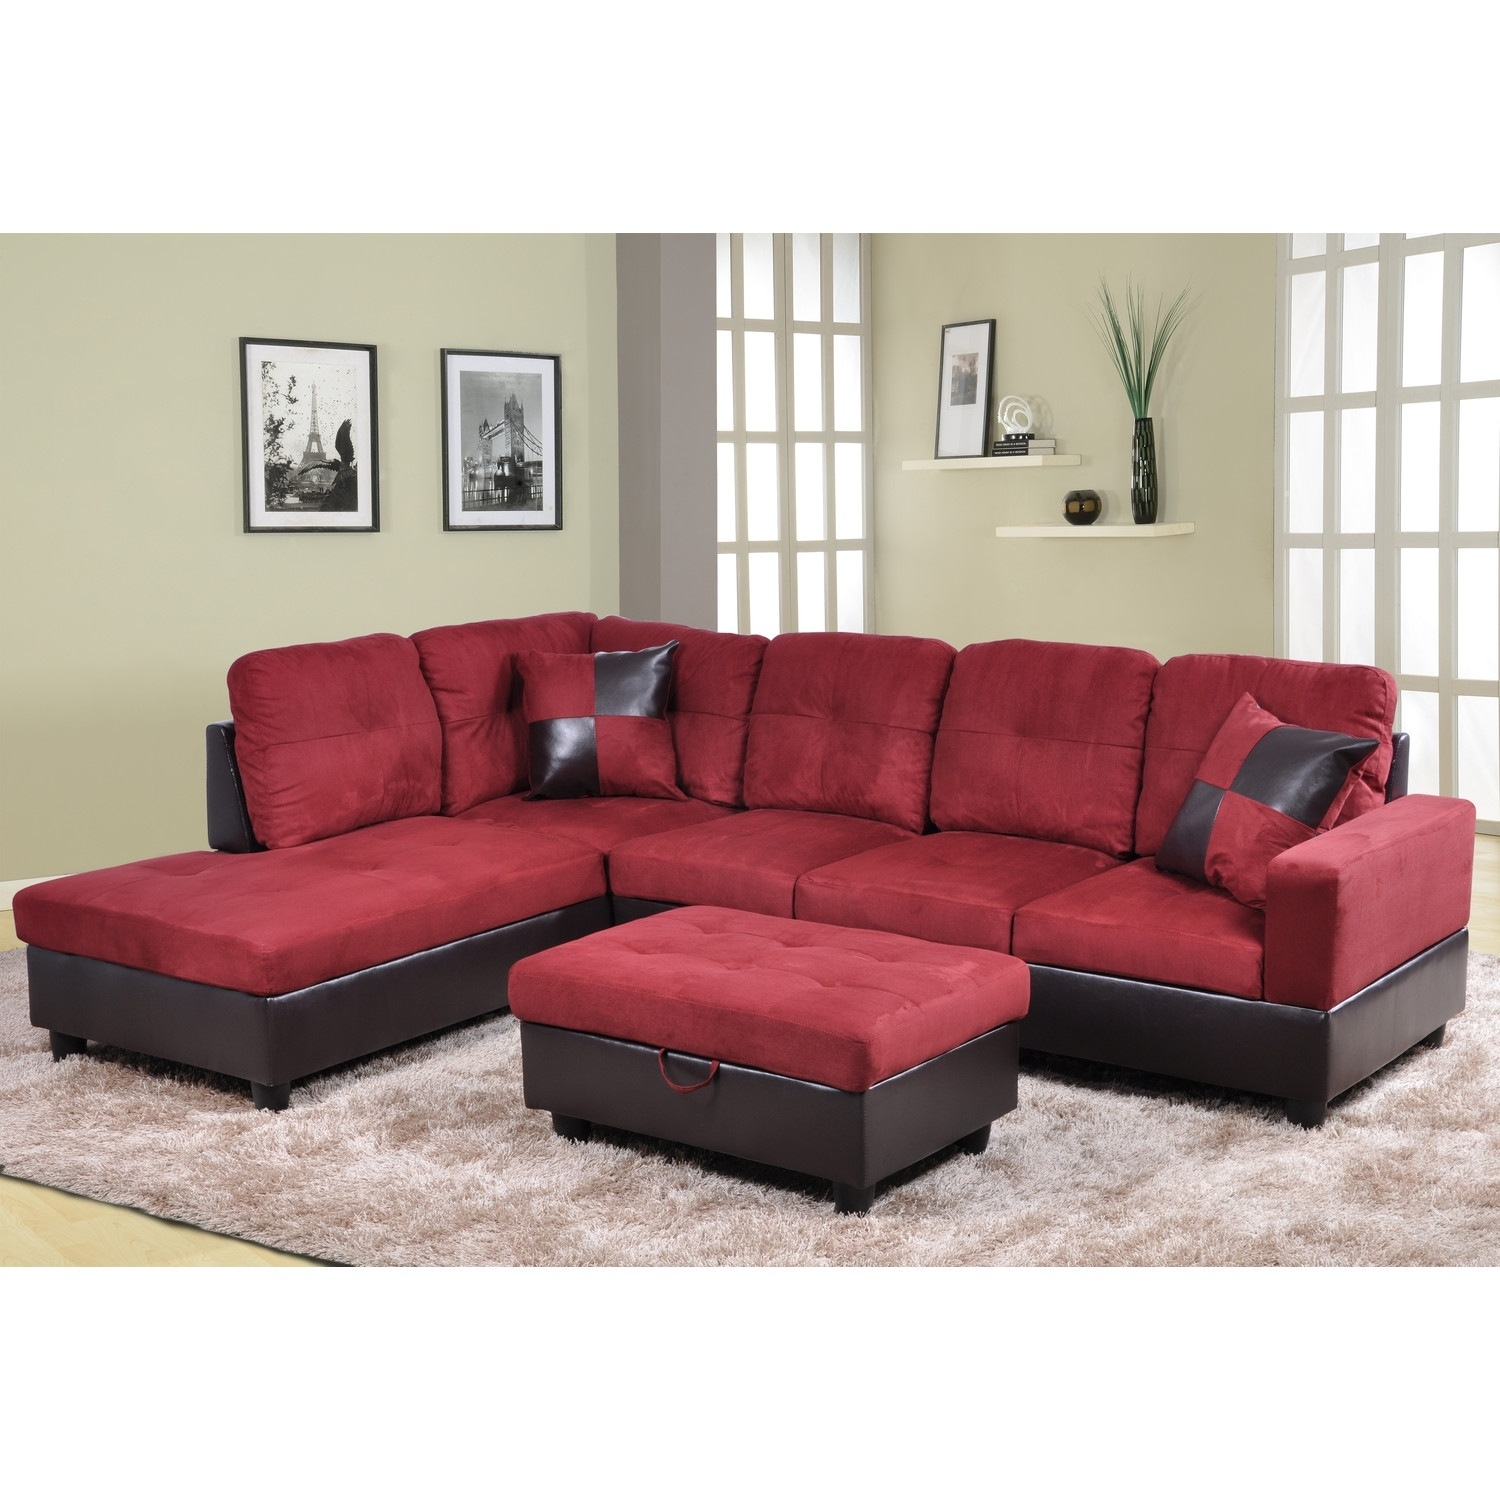 Cheap Sectional Sofas For Sale Inspirational Furniture Sears Sofa within Sears Sectional Sofas (Image 3 of 10)